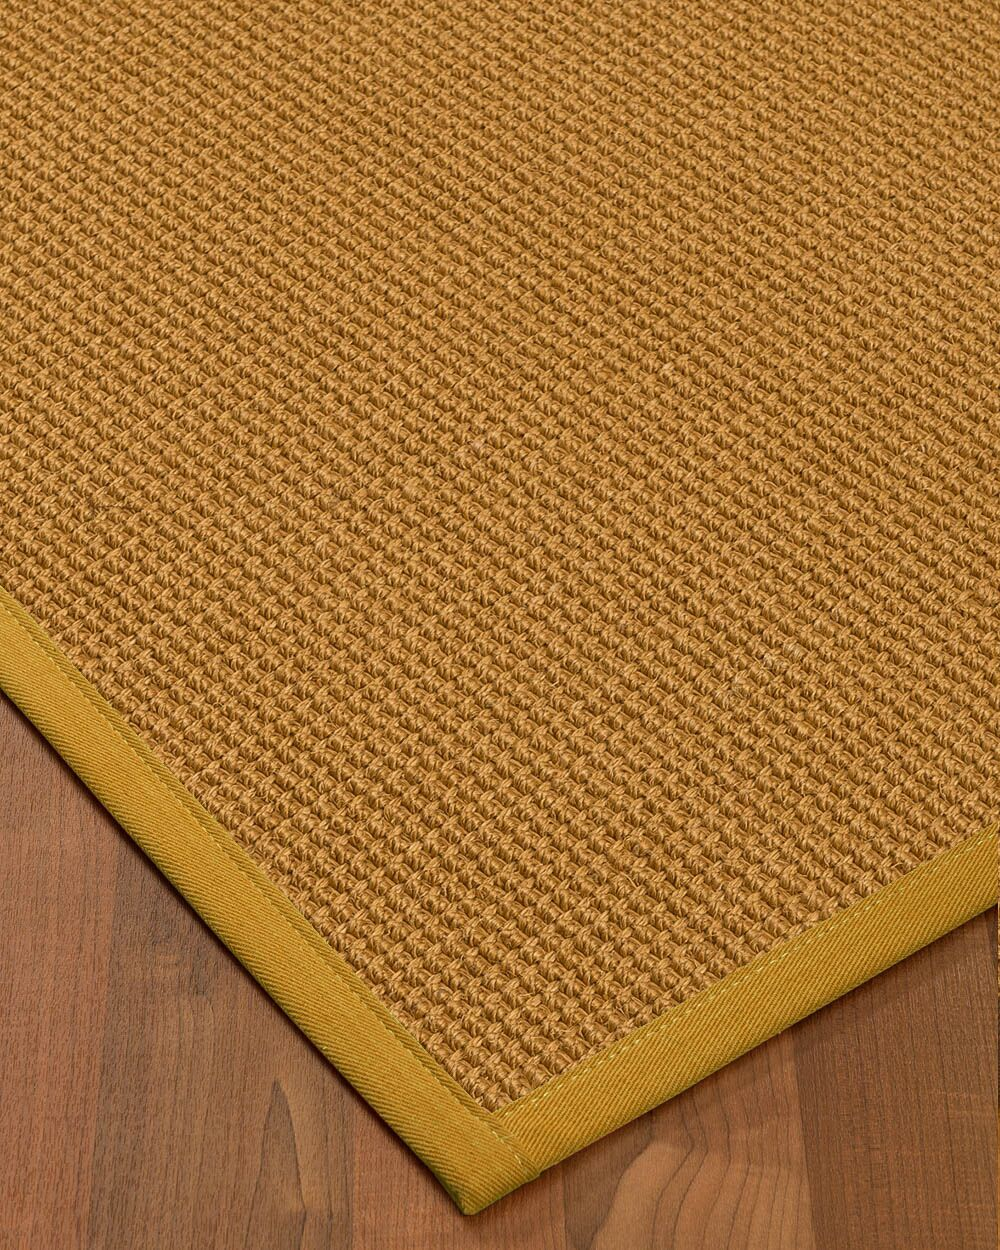 Aula Border Hand-Woven Brown/Tan Area Rug Rug Size: Rectangle 5' x 8', Rug Pad Included: Yes